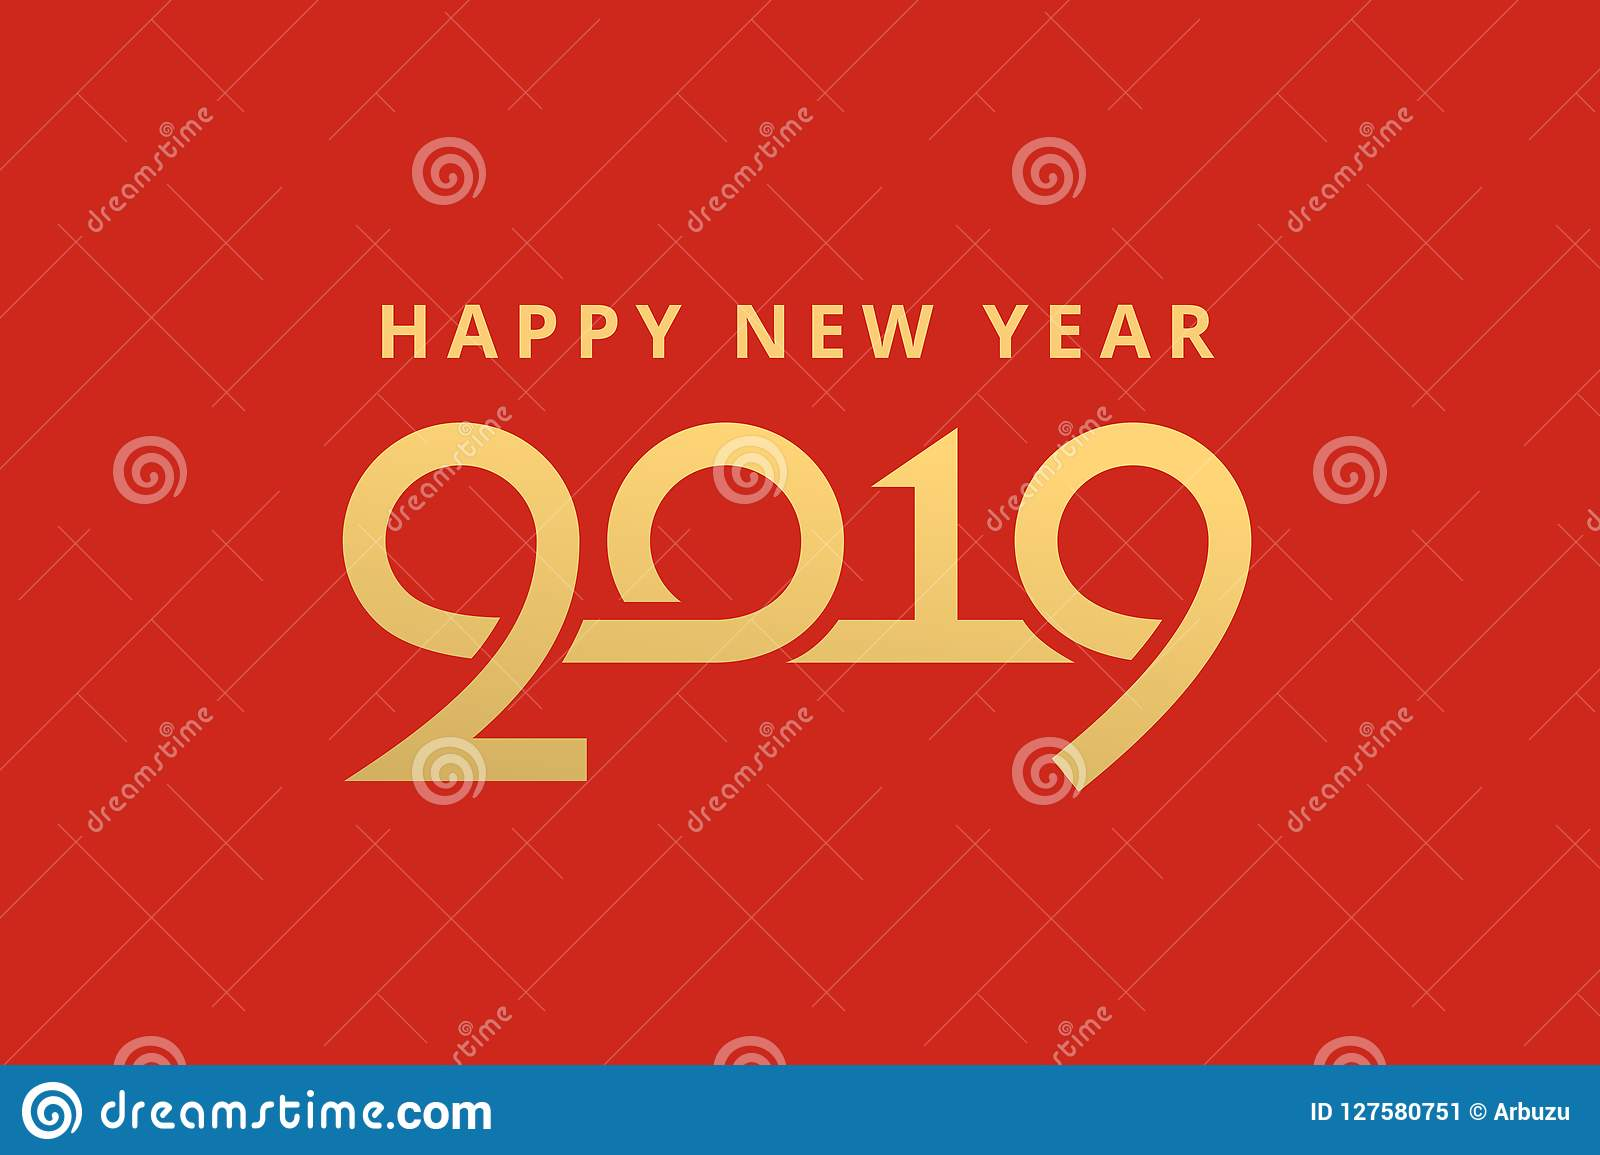 Happy New Year 2019 Greeting Card Design Stock Vector Illustration